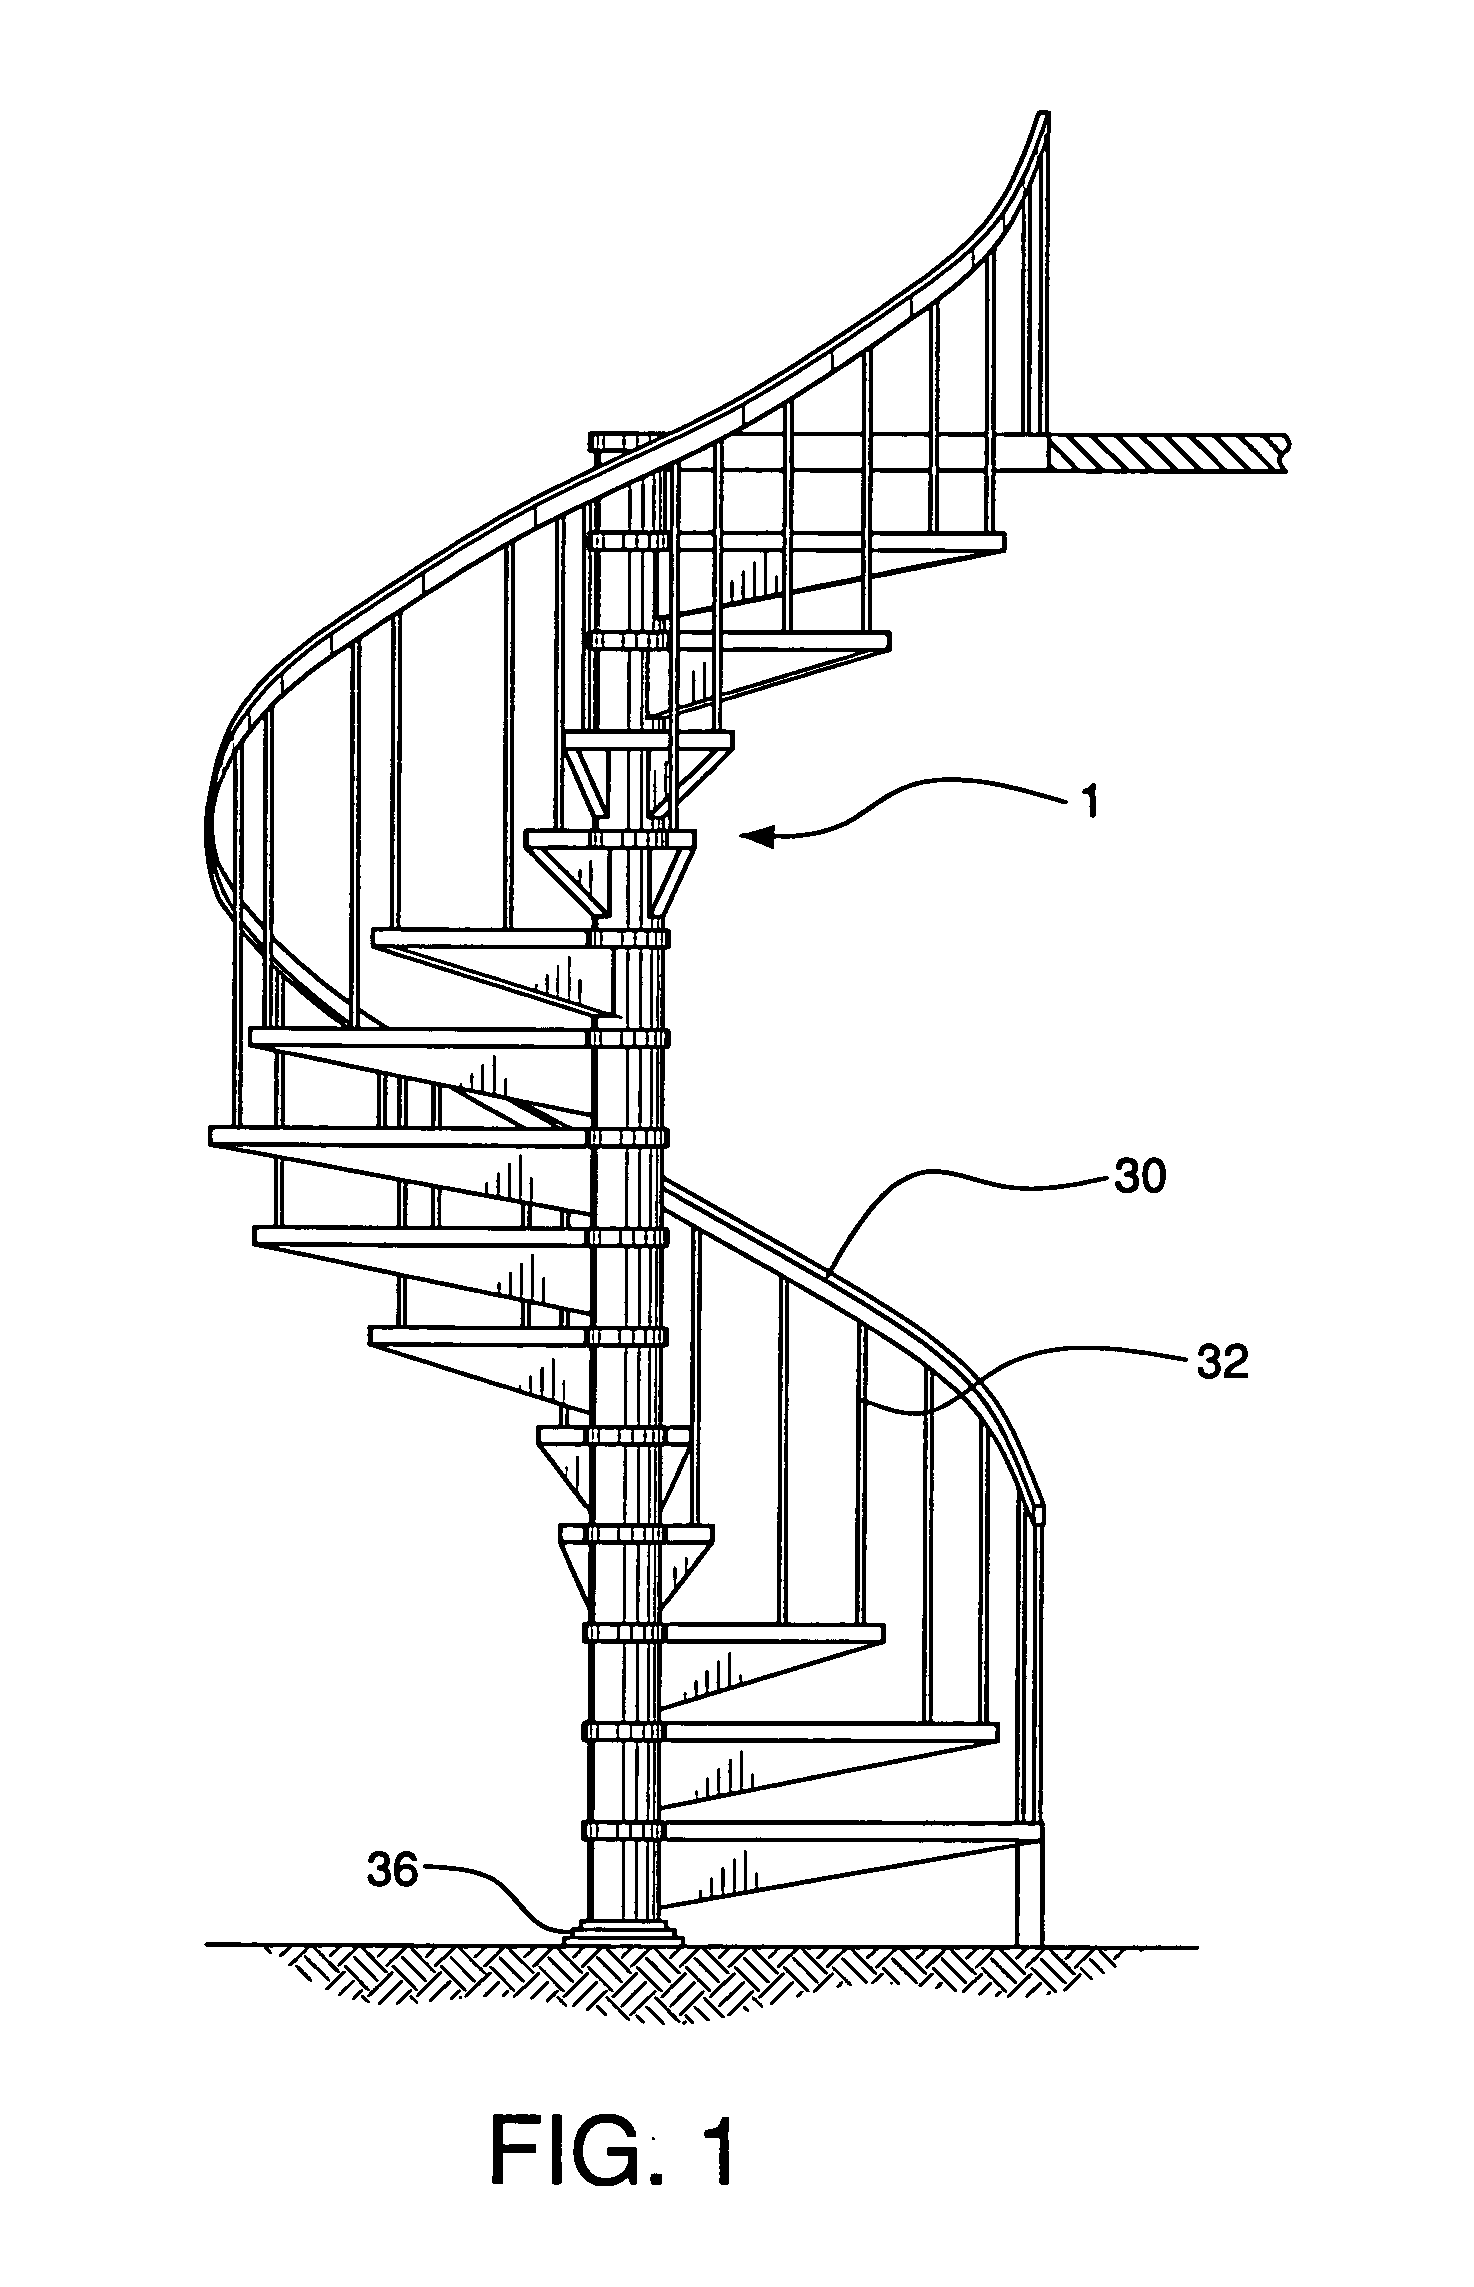 Staircase Plans Drawing Image Result For Spiral Staircase Drawing Art Tutorials